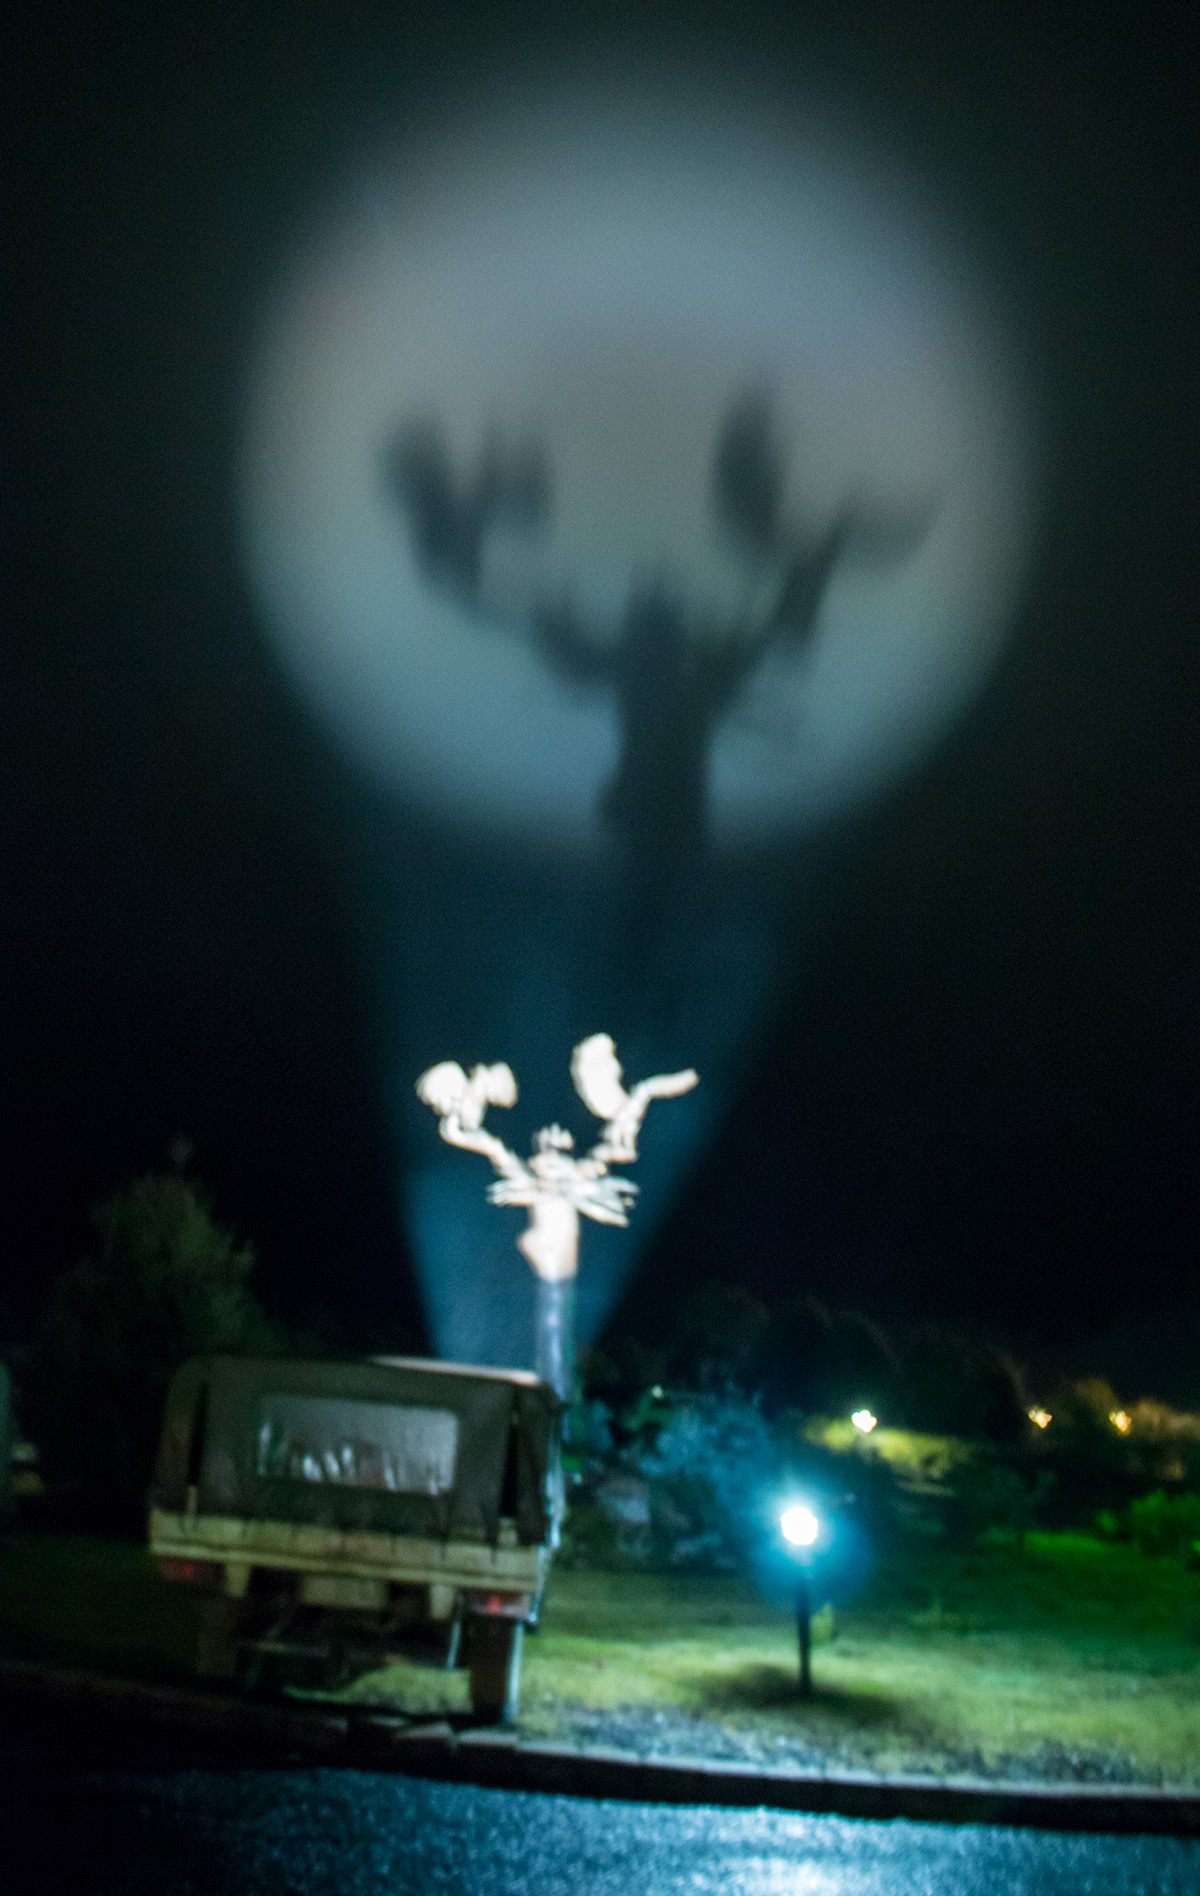 A cloud passed by turning the eagle statue into a batman signal.